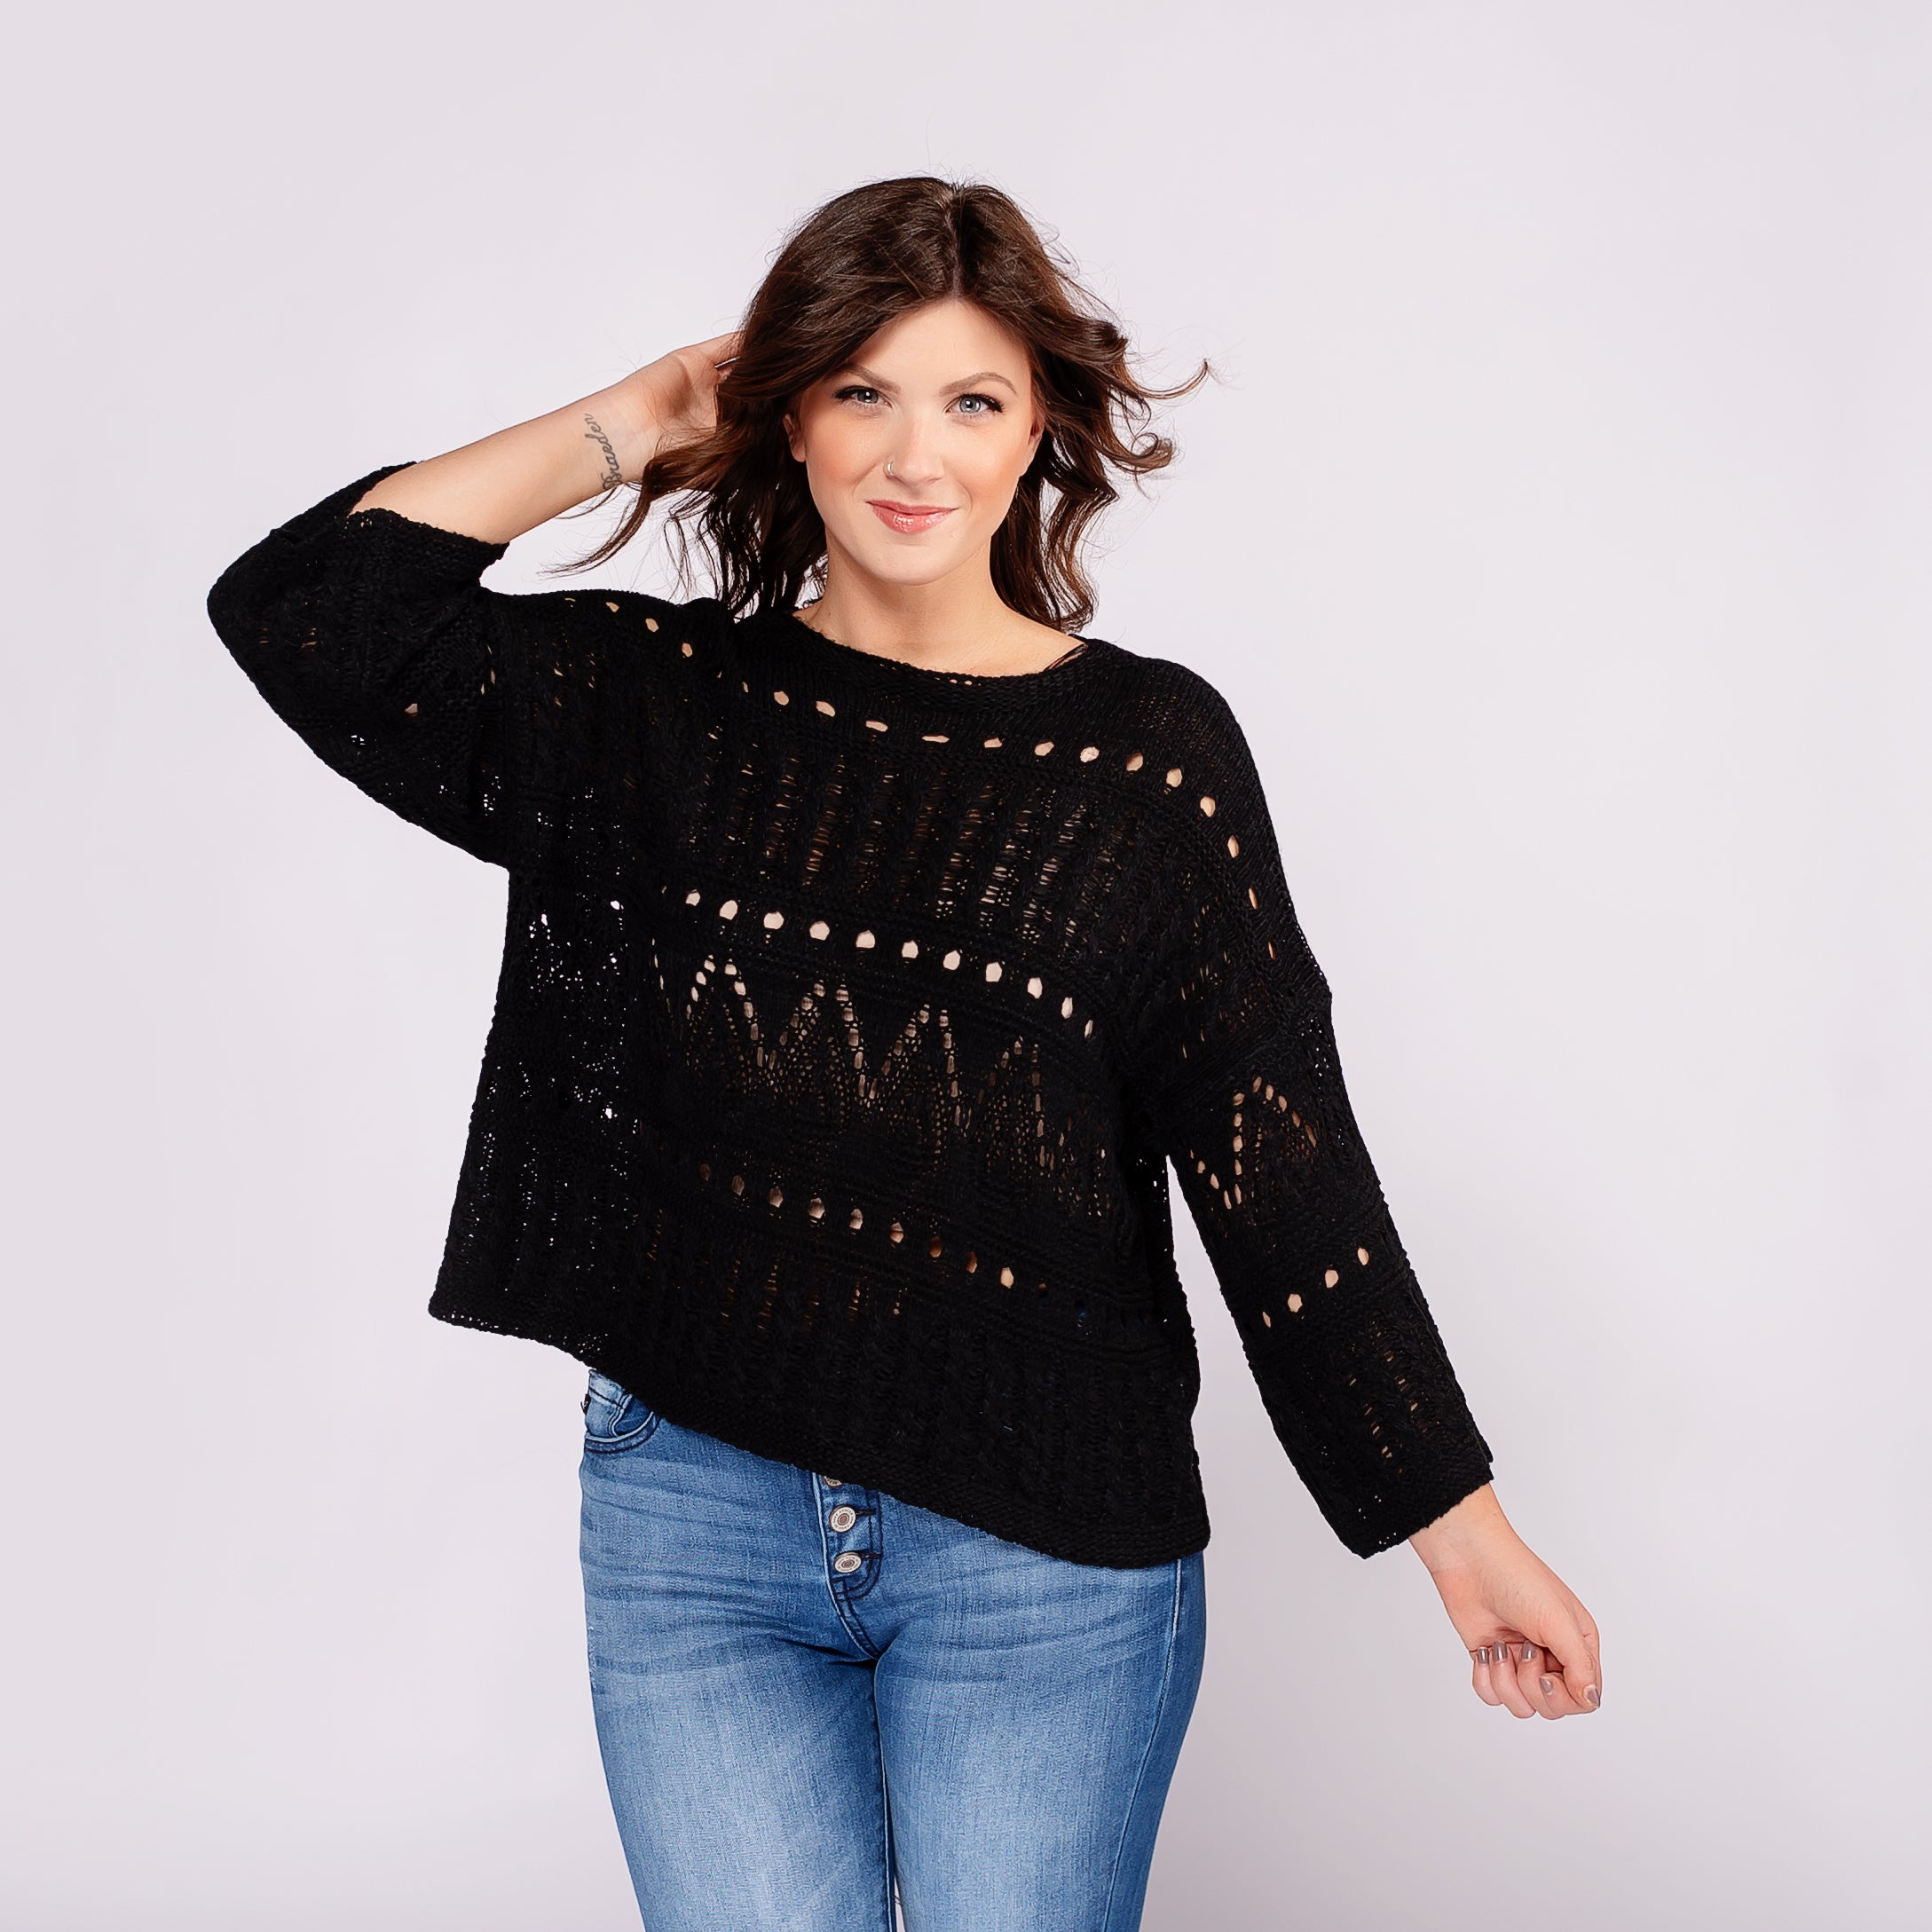 Crochet Sweater with Bell Sleeves